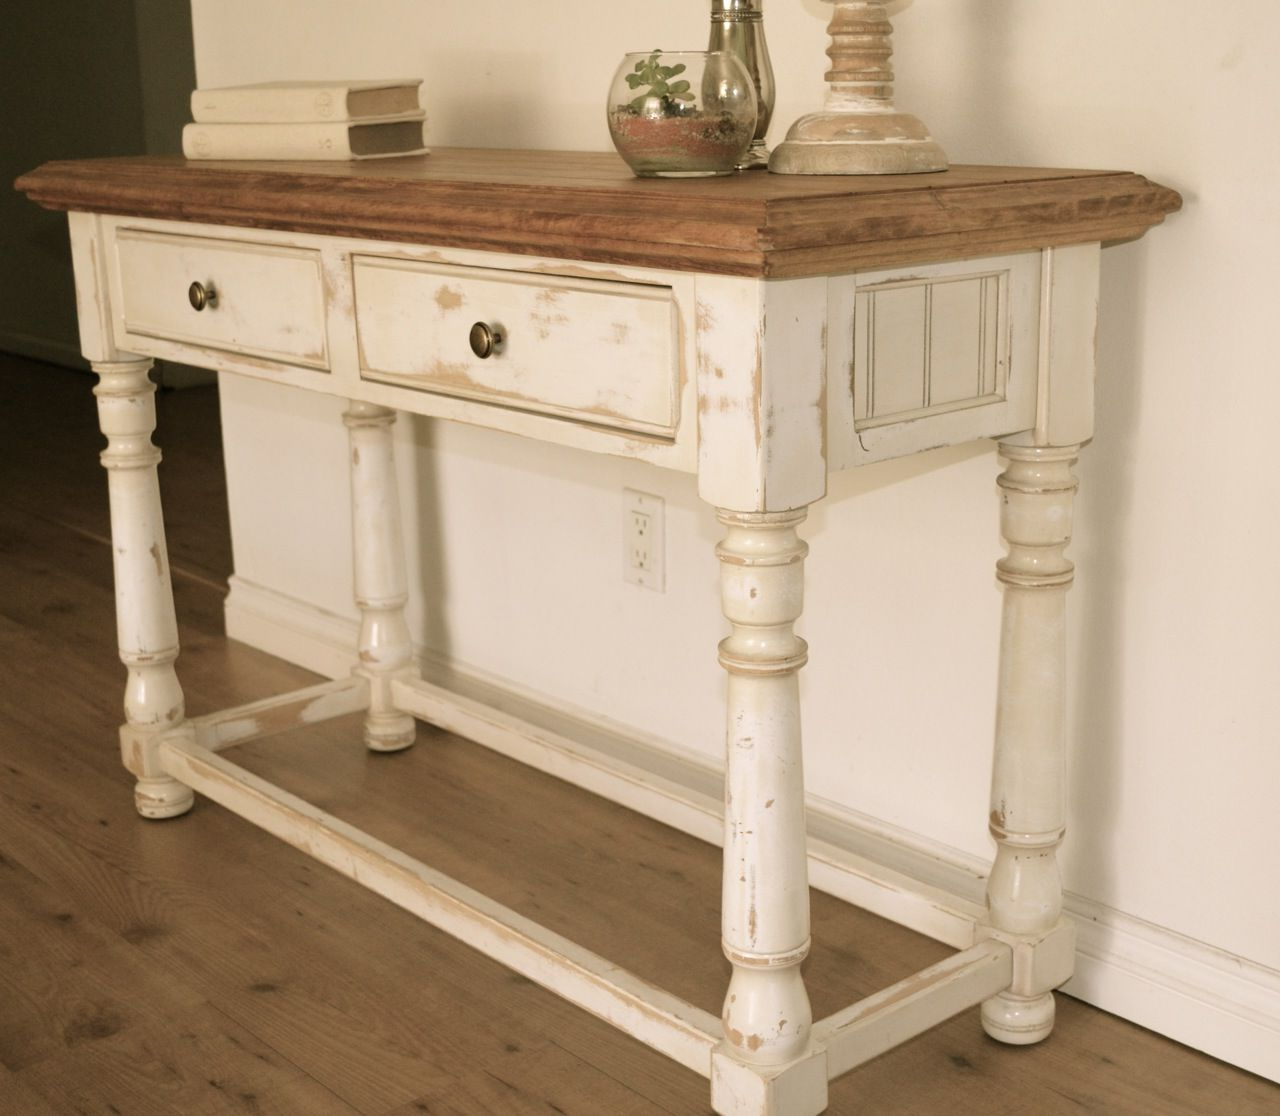 Farmhouse Style Console Table. Distressed White Paint, Light Stain Regarding Current Hand Carved White Wash Console Tables (Gallery 17 of 20)